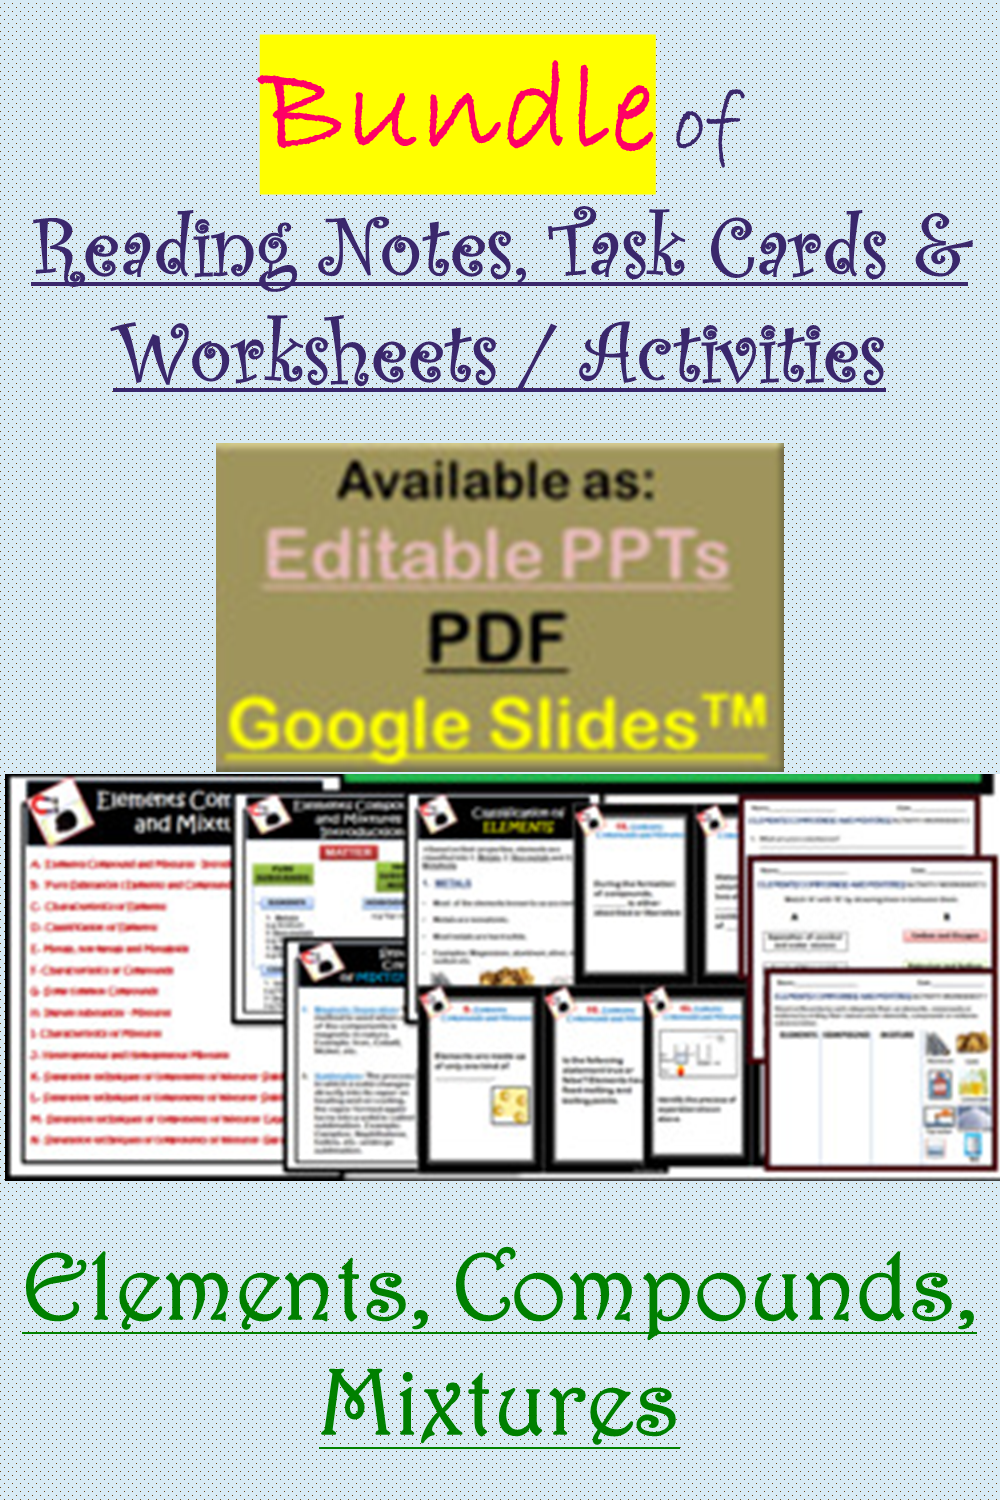 Editable Bundle Of Elements Compounds Mixtures Reading Notes Task Cards Worksheets Activities In 2021 Teaching Process Teaching Resources Teacher Resources [ 1500 x 1000 Pixel ]